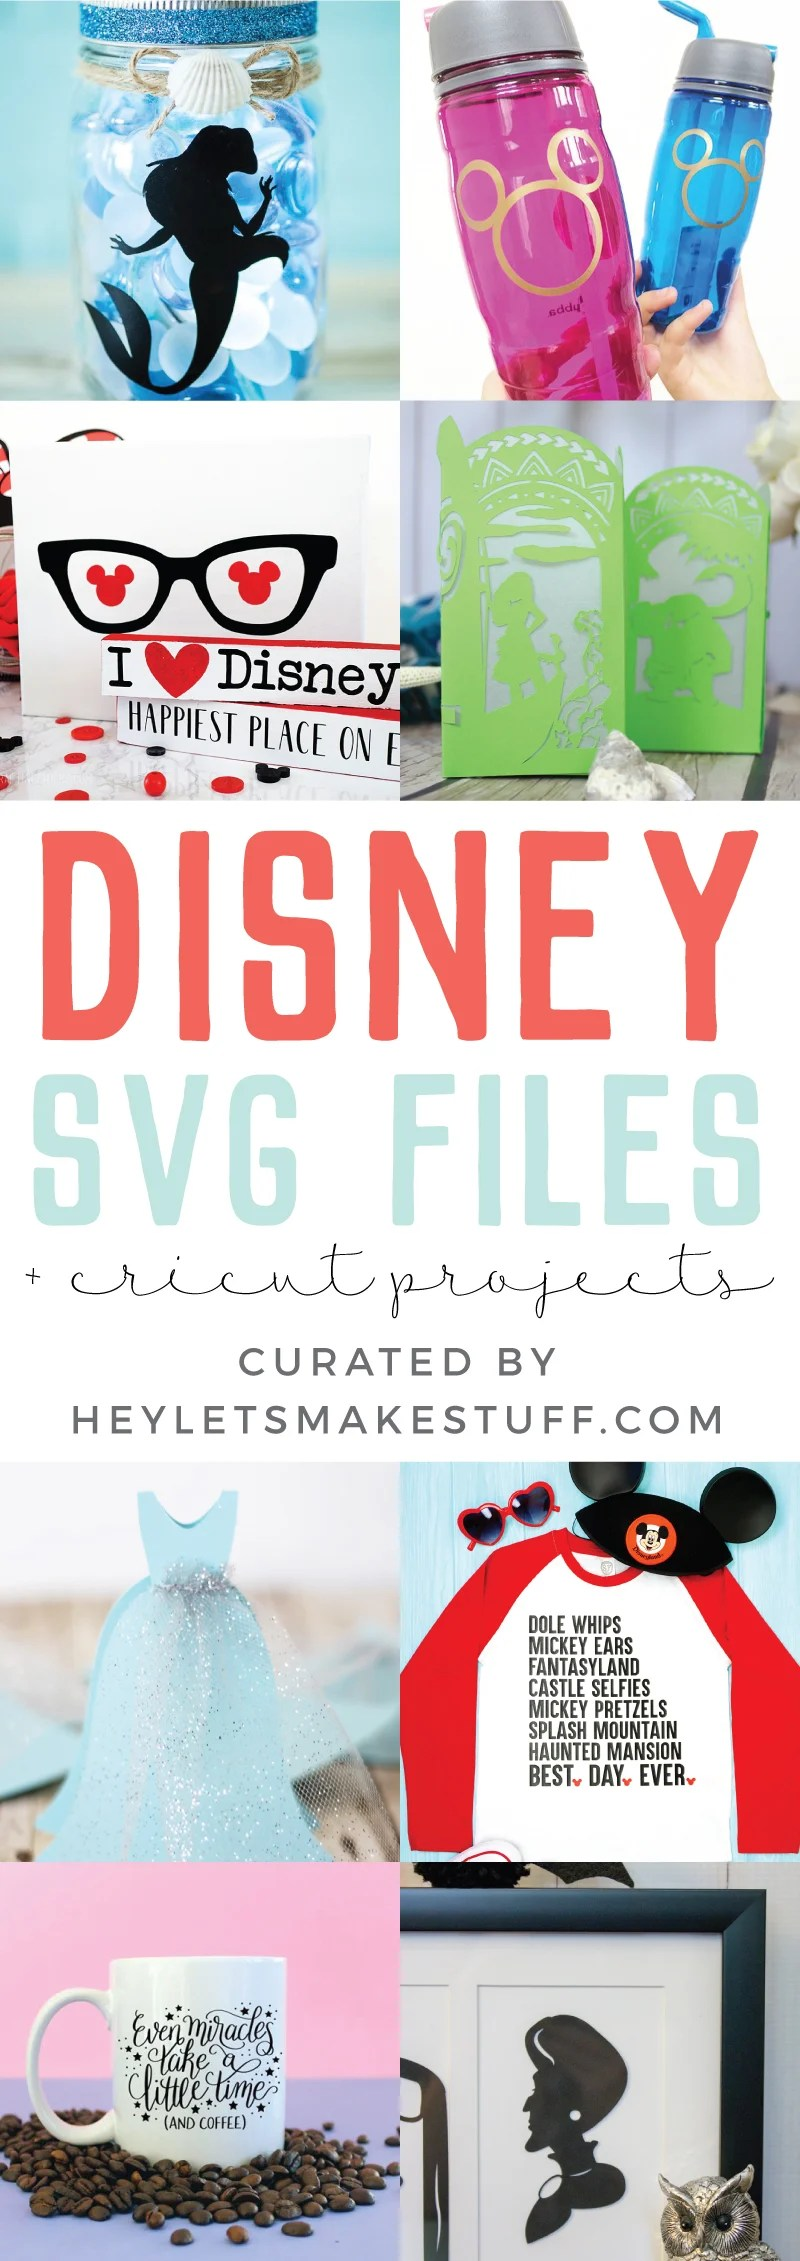 Bring the happiest place on earth a little closer to home with this fun collection of Disney SVG files and Cricut crafts! Let Mickey & friends adorn everything from tote bags to tumblers to family vacation t-shirts. via @heyletsmakestuf